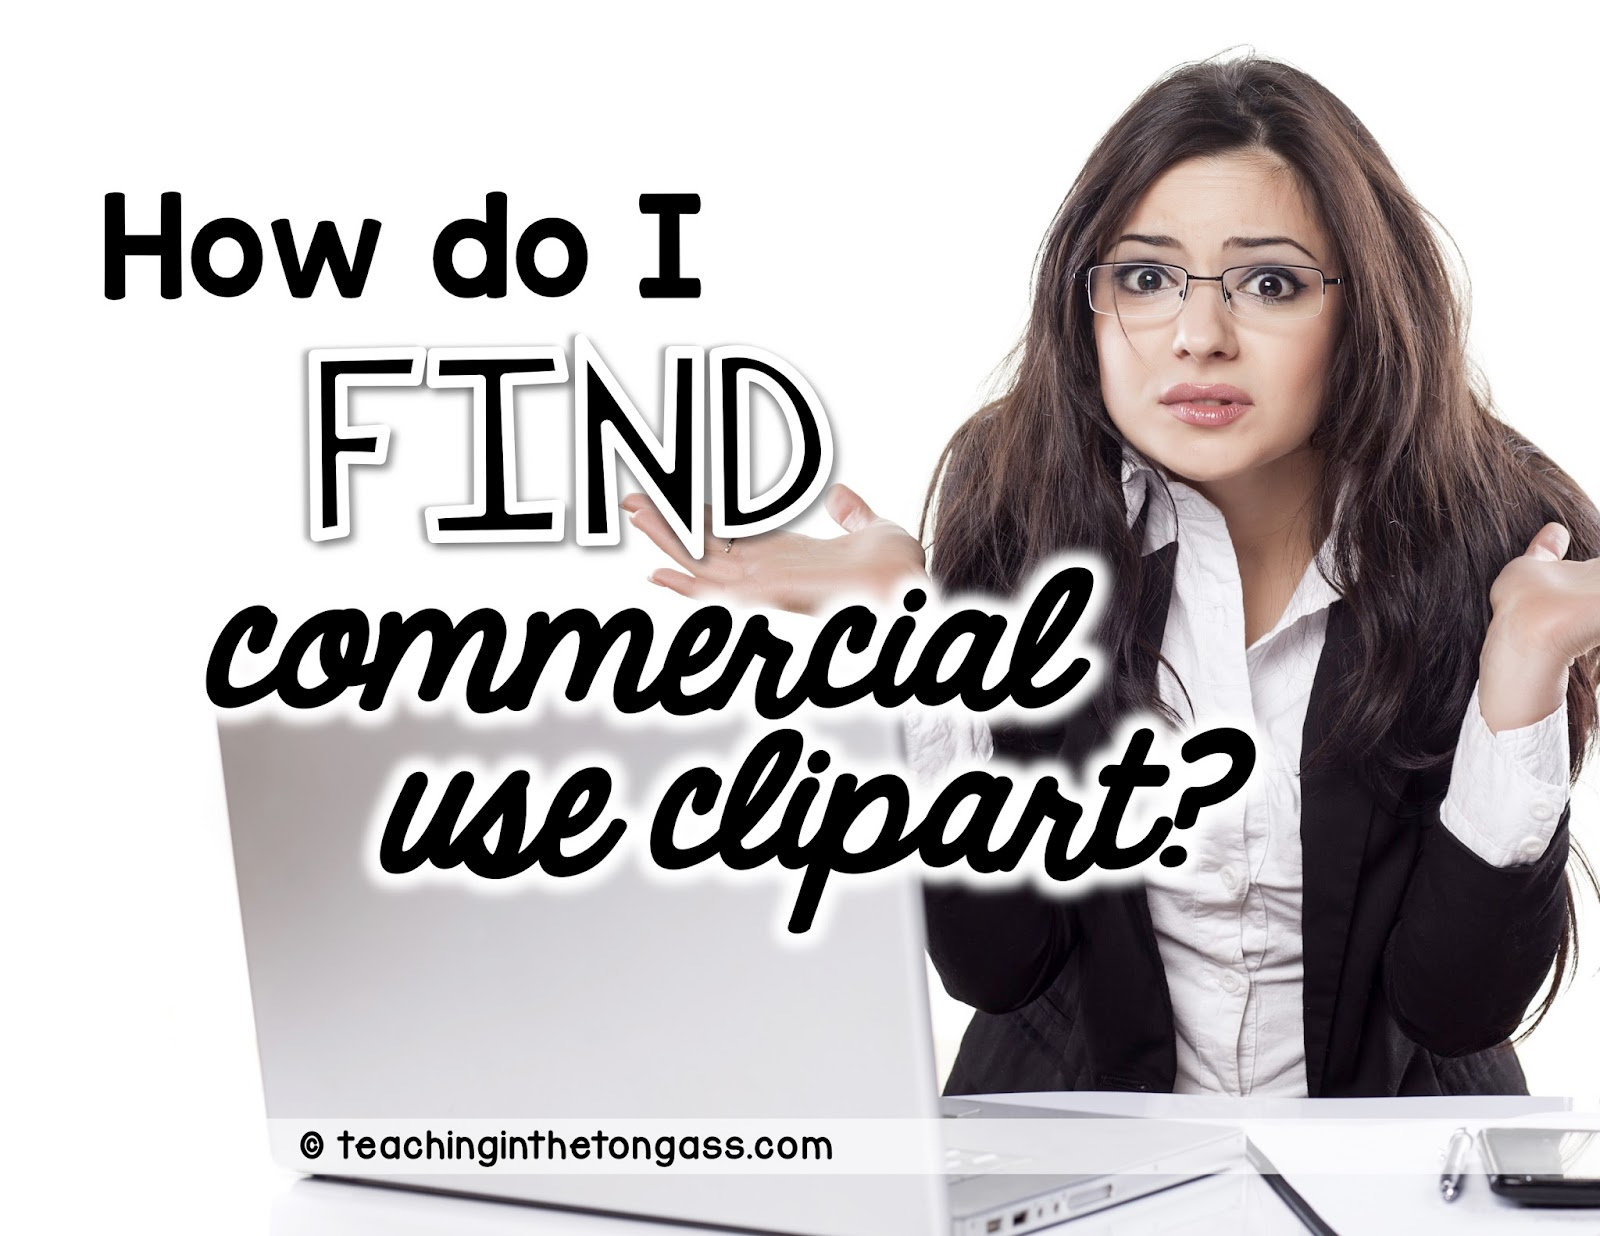 Finding commercial use.